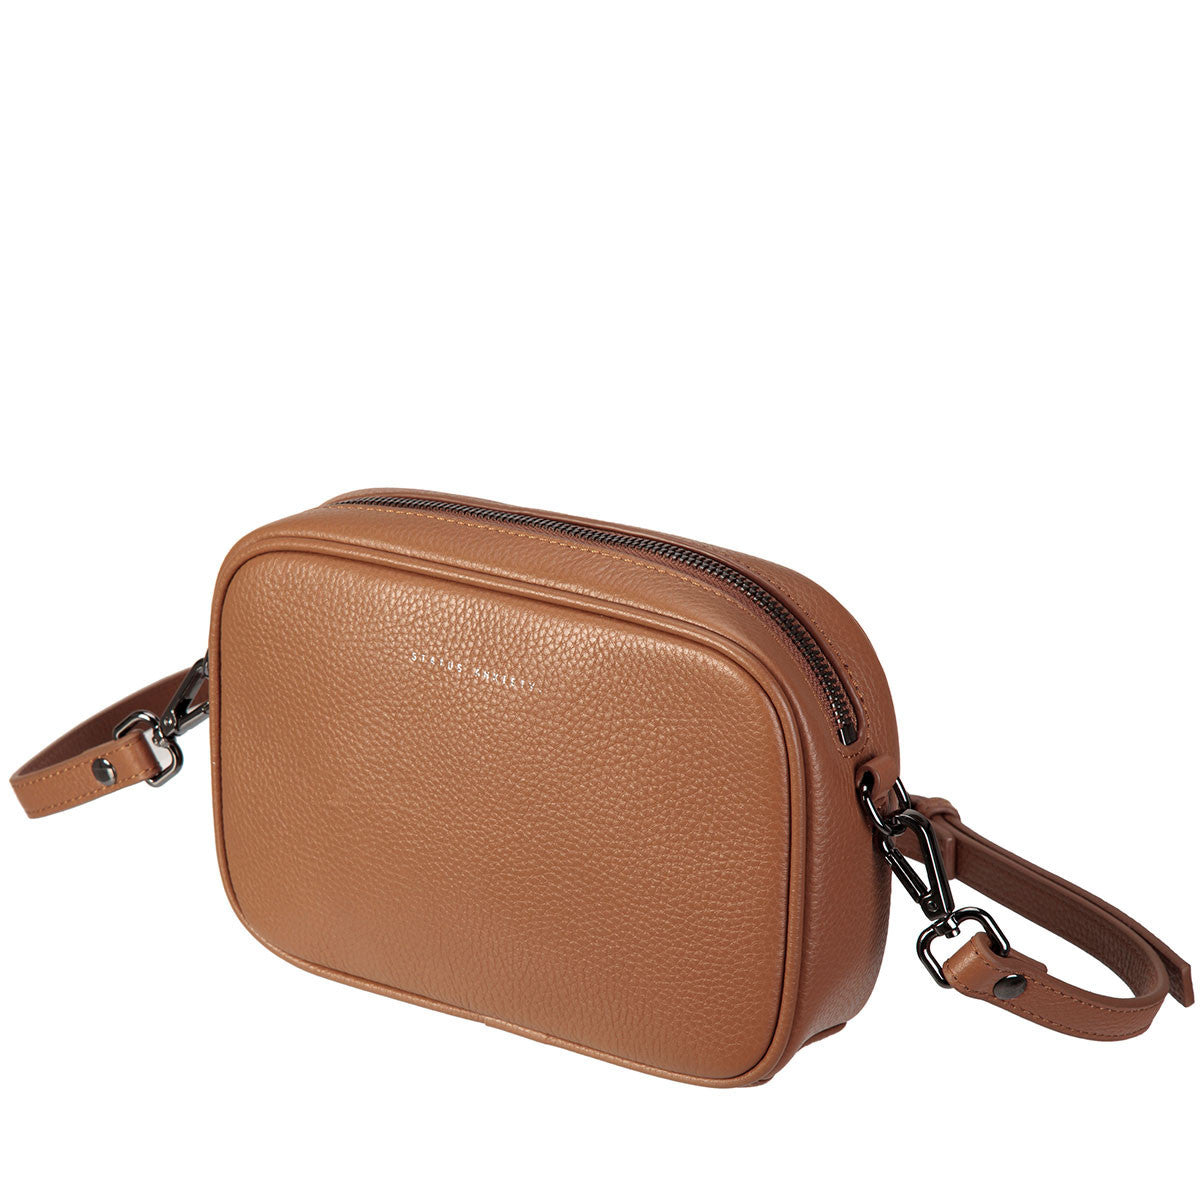 THE PLUNDER TAN LEATHER BAG FROM STATUS ANXIETY 5